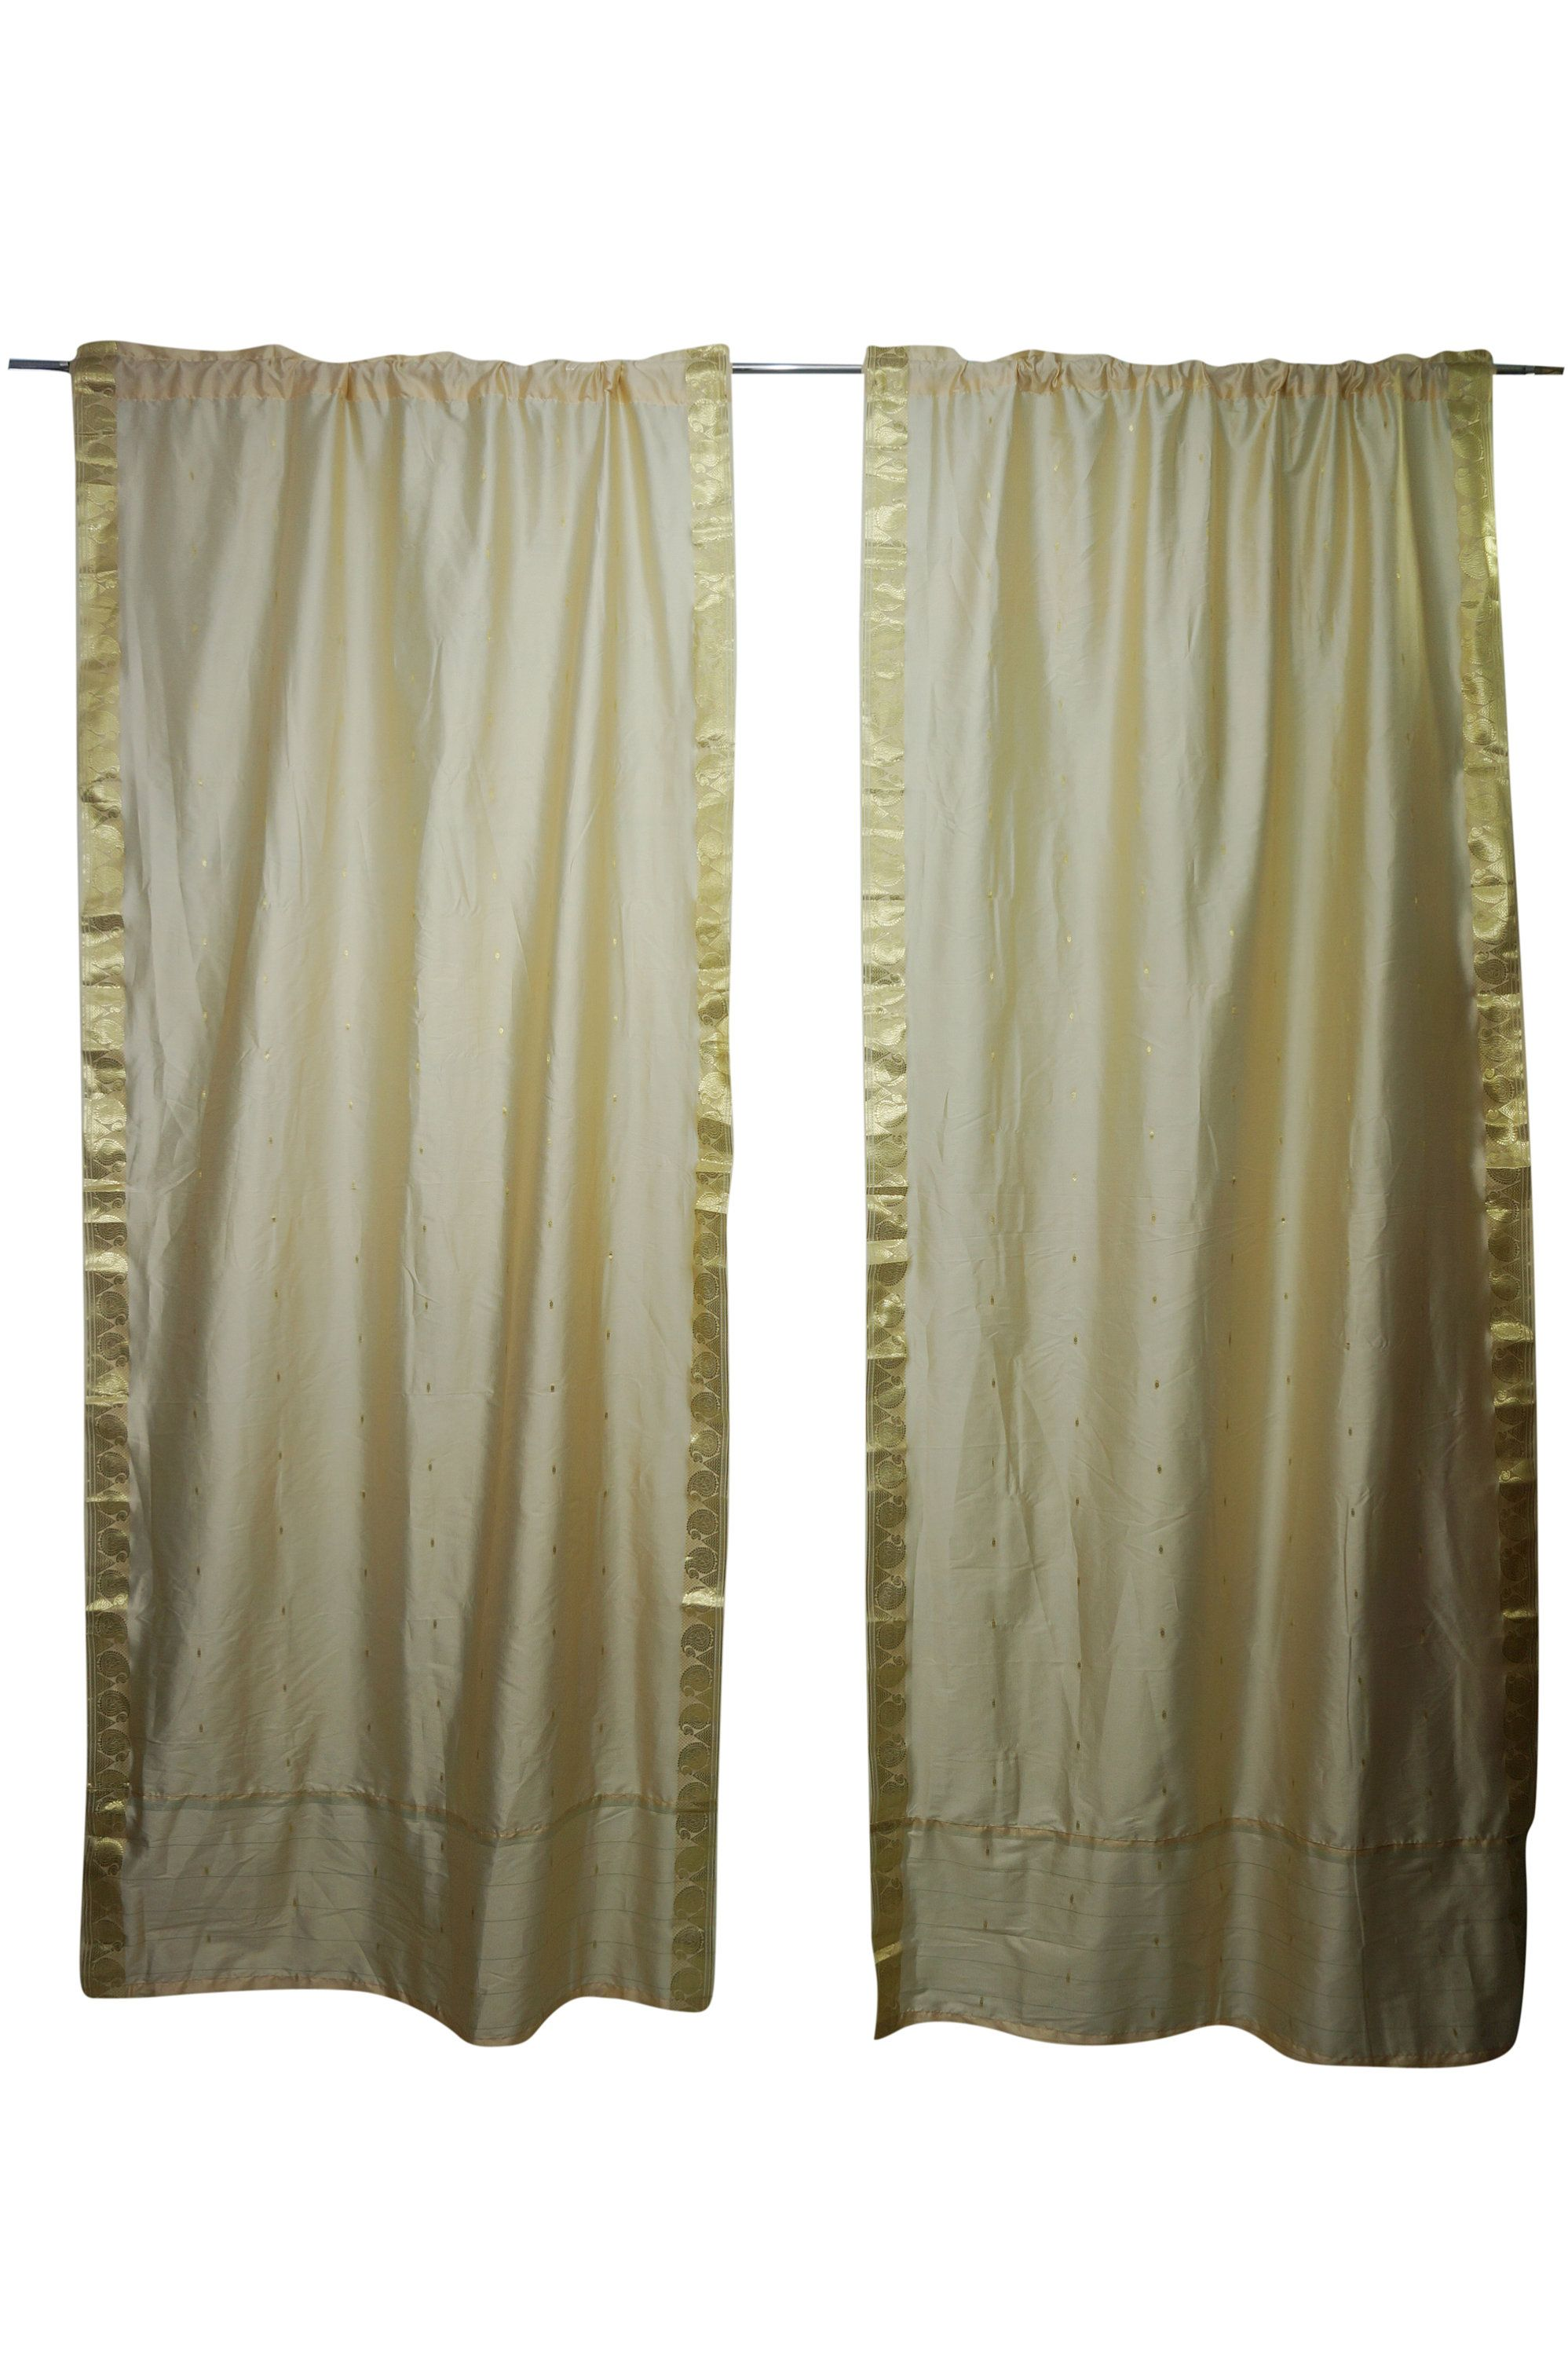 Living Room Curtains Creamy Gold Bedroom Curtain Panel Set Of 2